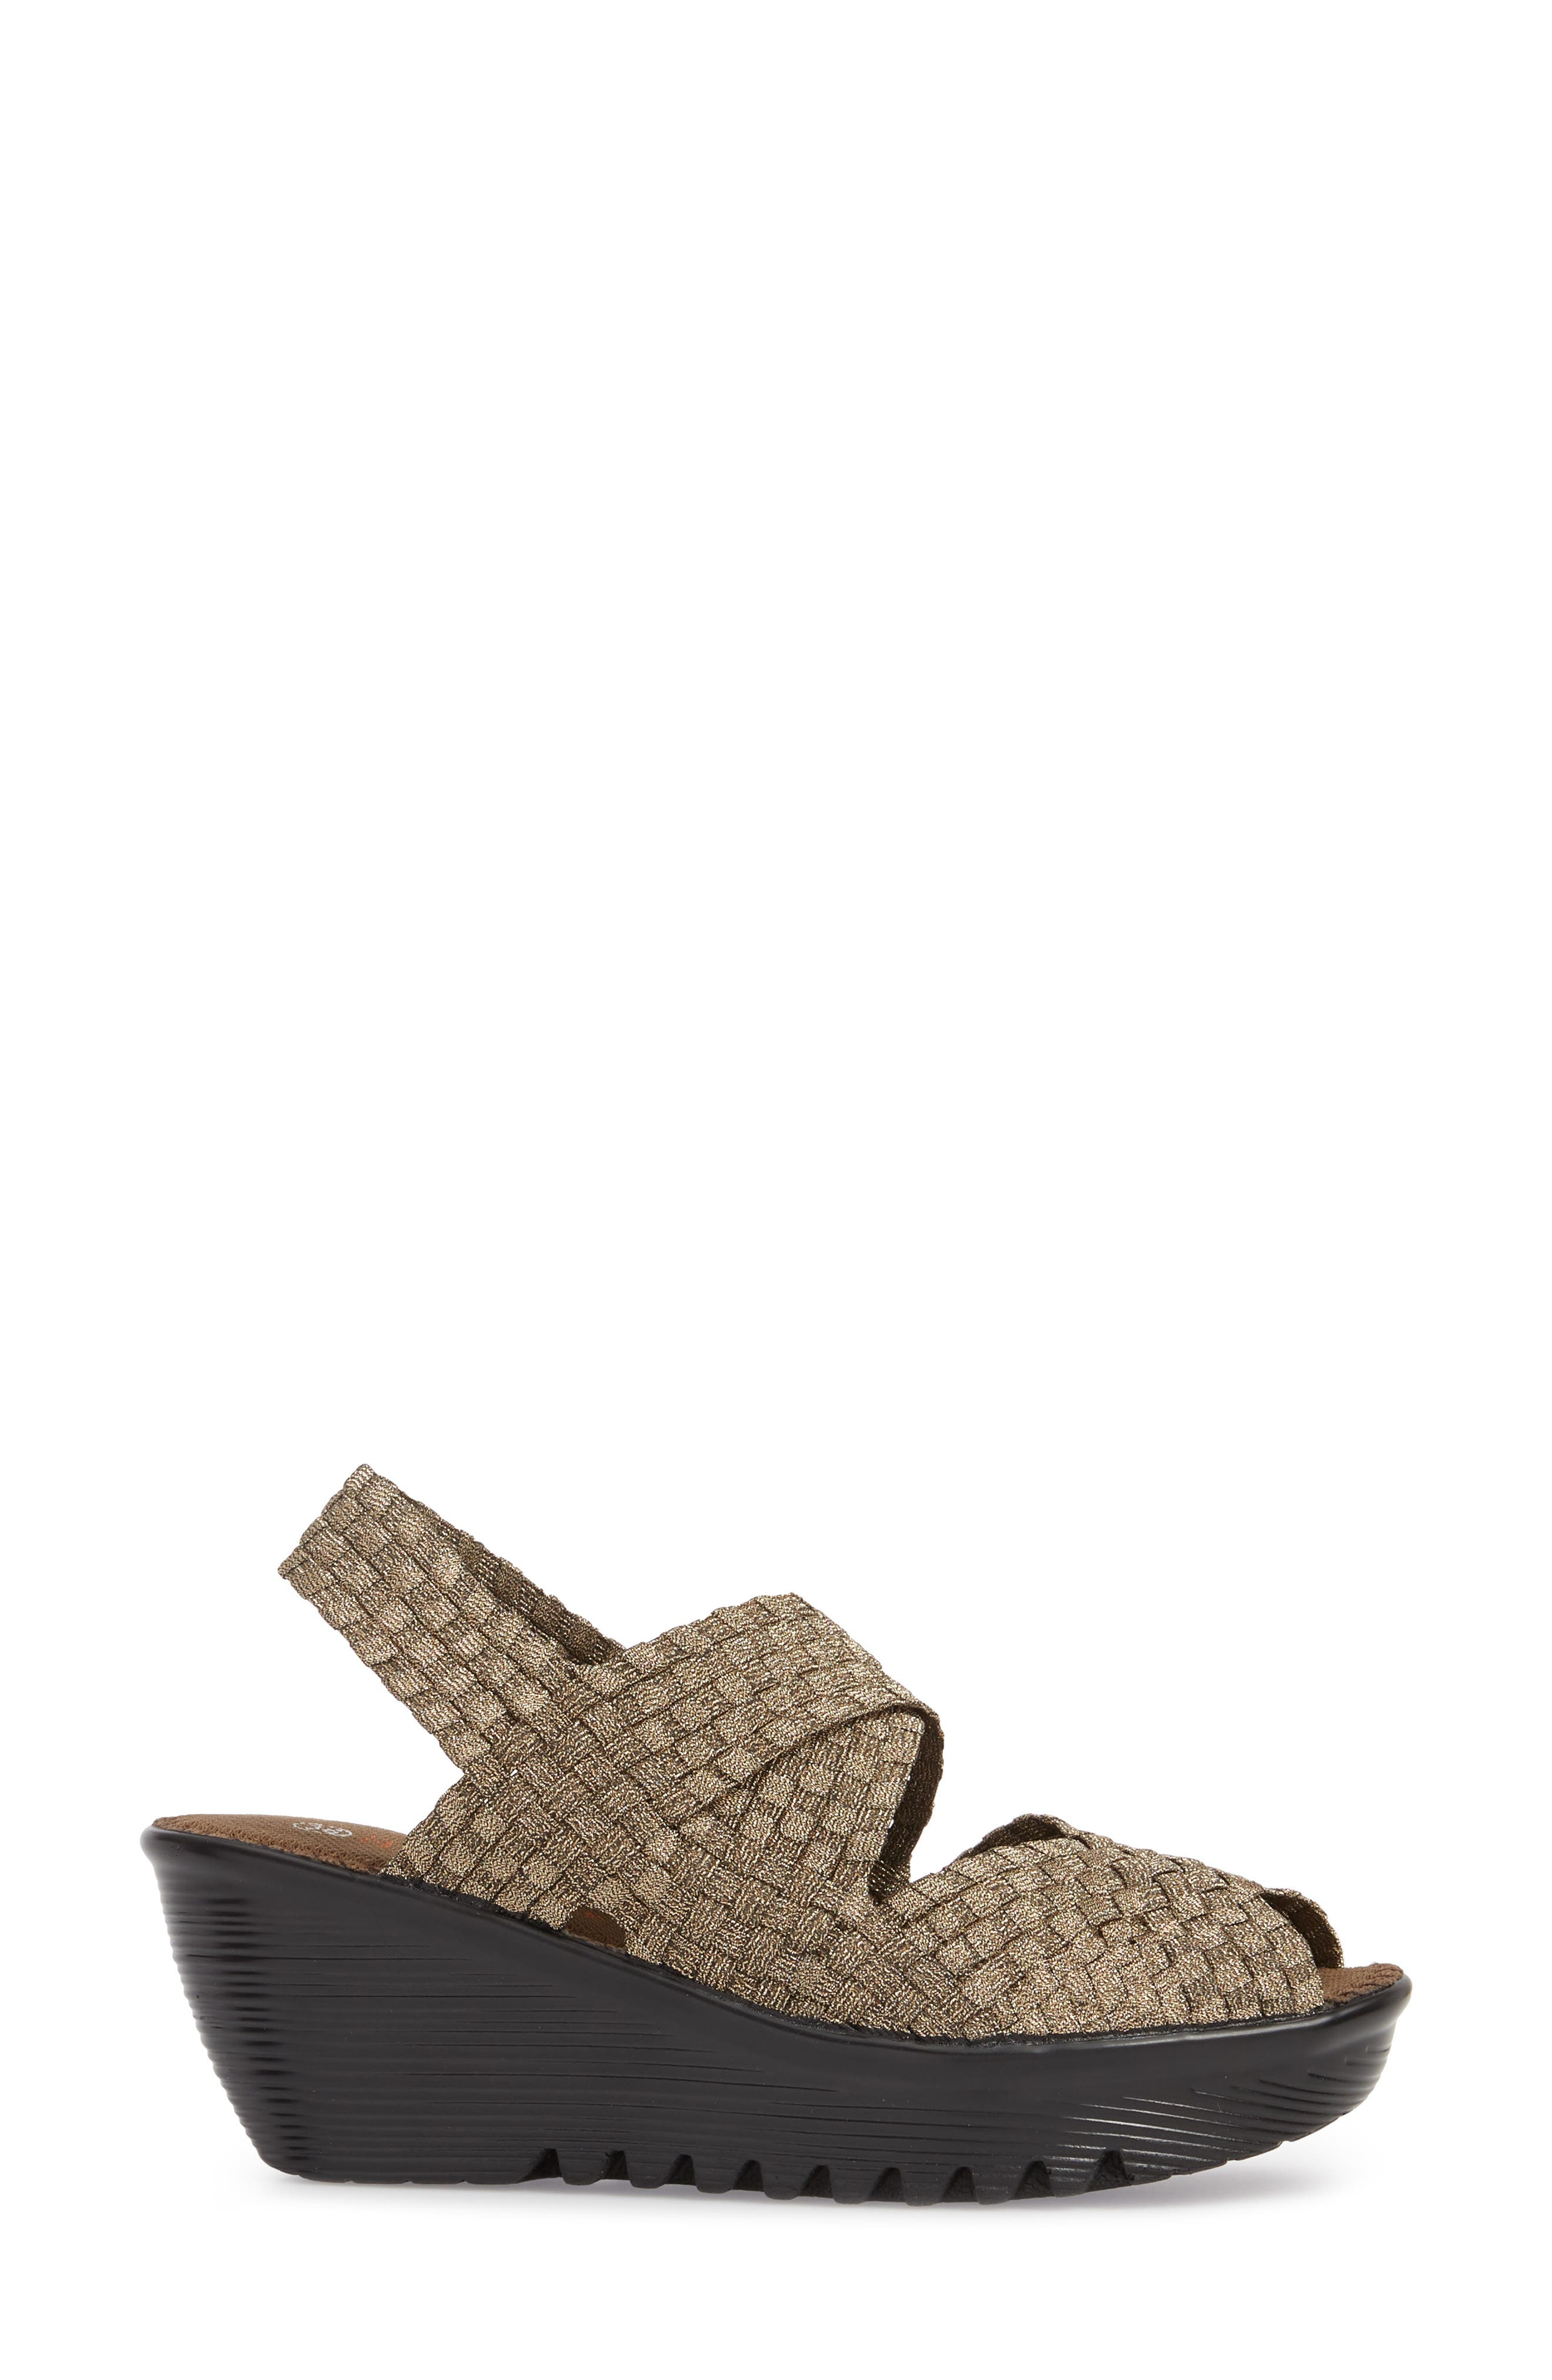 Jessica Wedge Sandal,                             Alternate thumbnail 3, color,                             Bronze Fabric